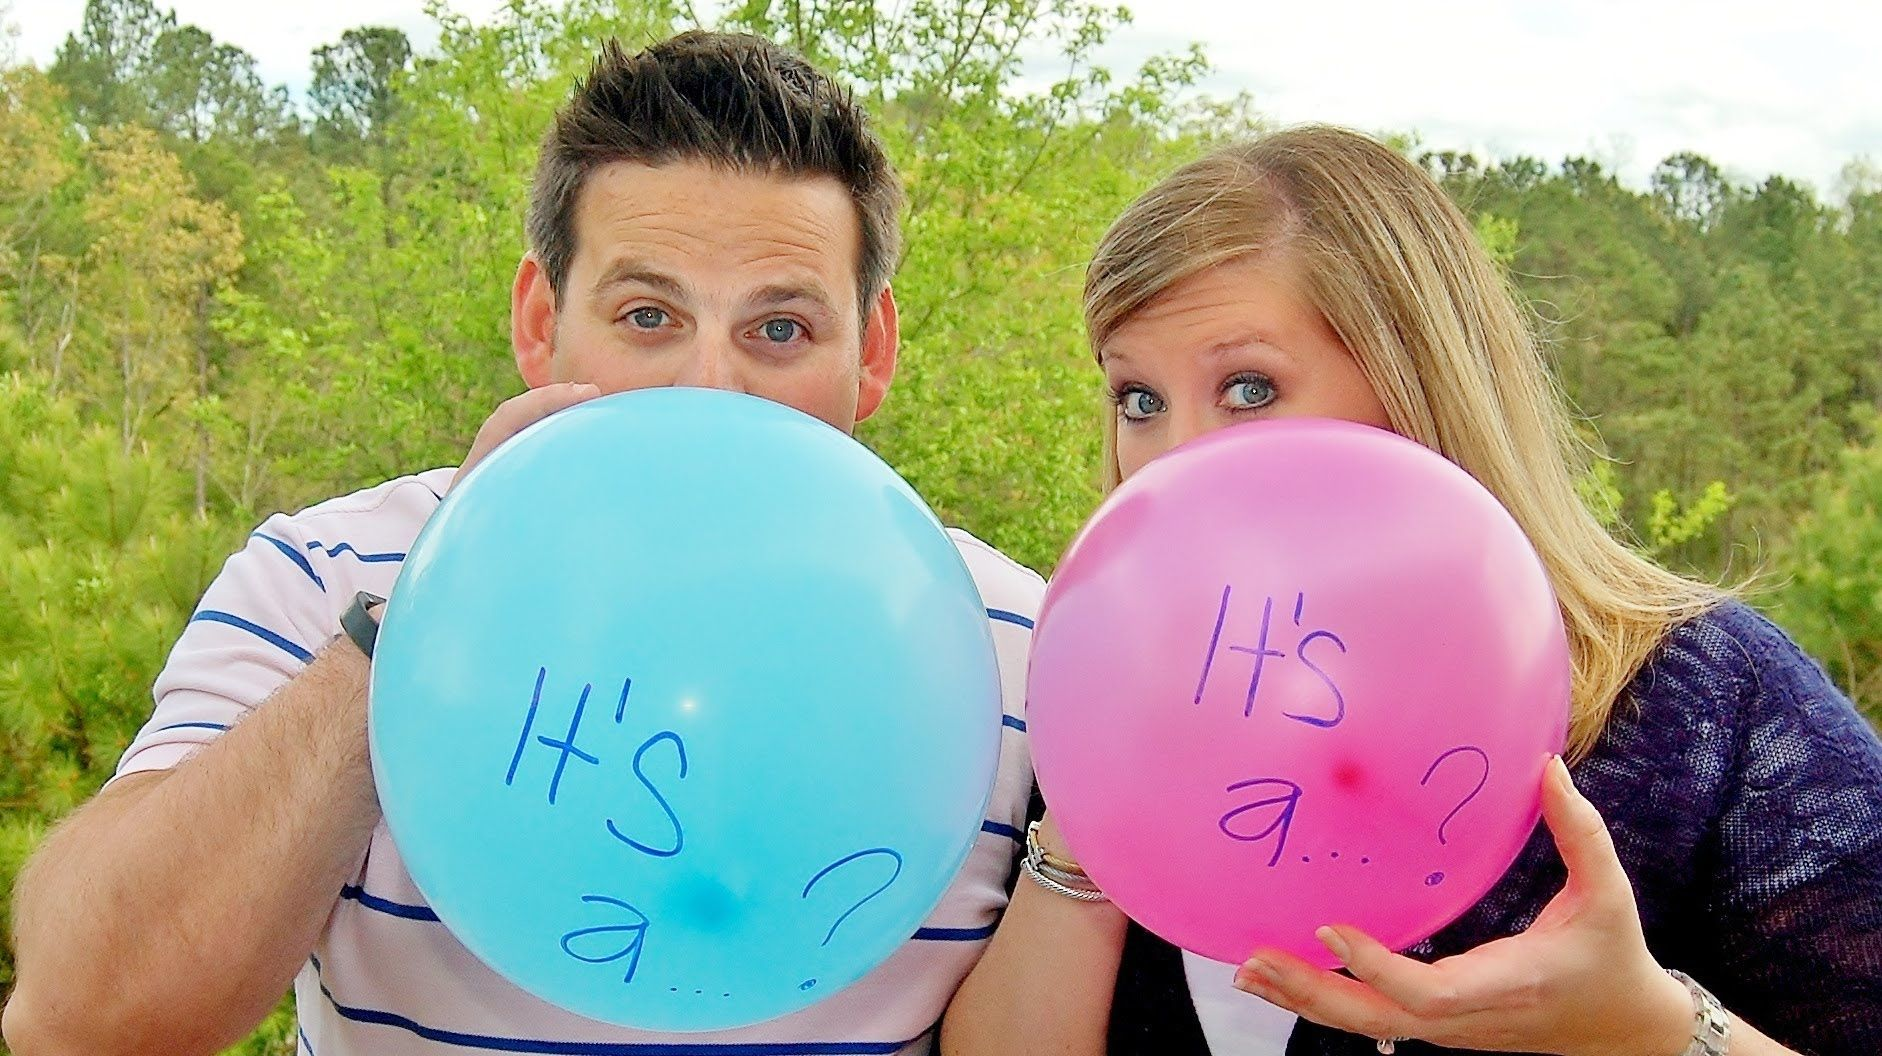 Awesome GENDER REVEAL idea Poke small pin holes in the color